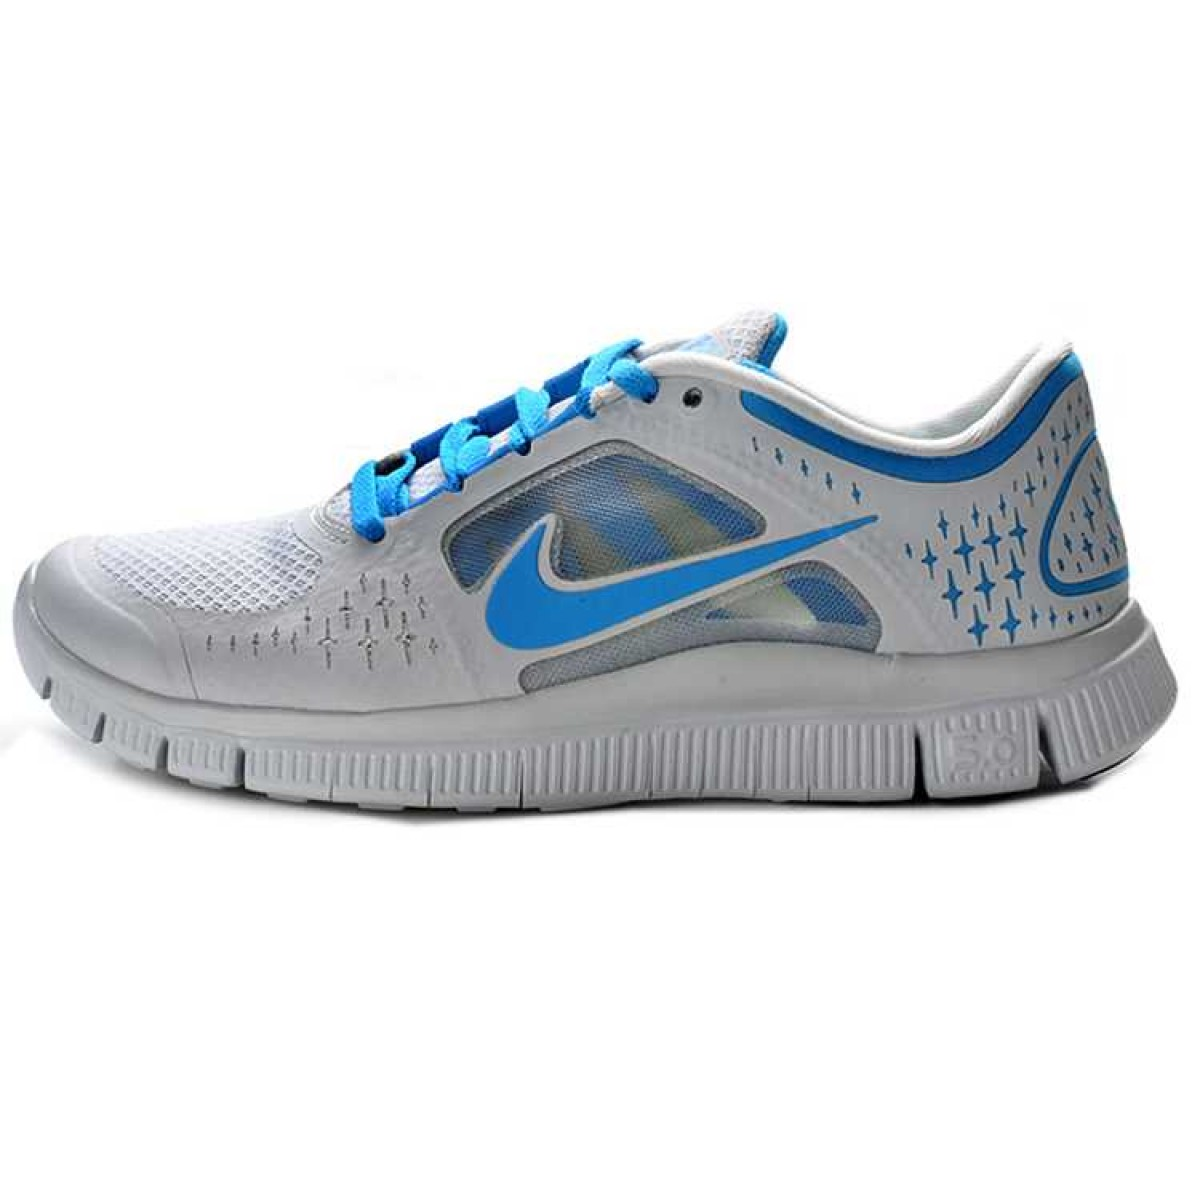 outlet store 55438 170ce Nike Free 5.0 V4 Homme Chaussures Bleu Blanc,nike free nike dunk  low,Meilleur